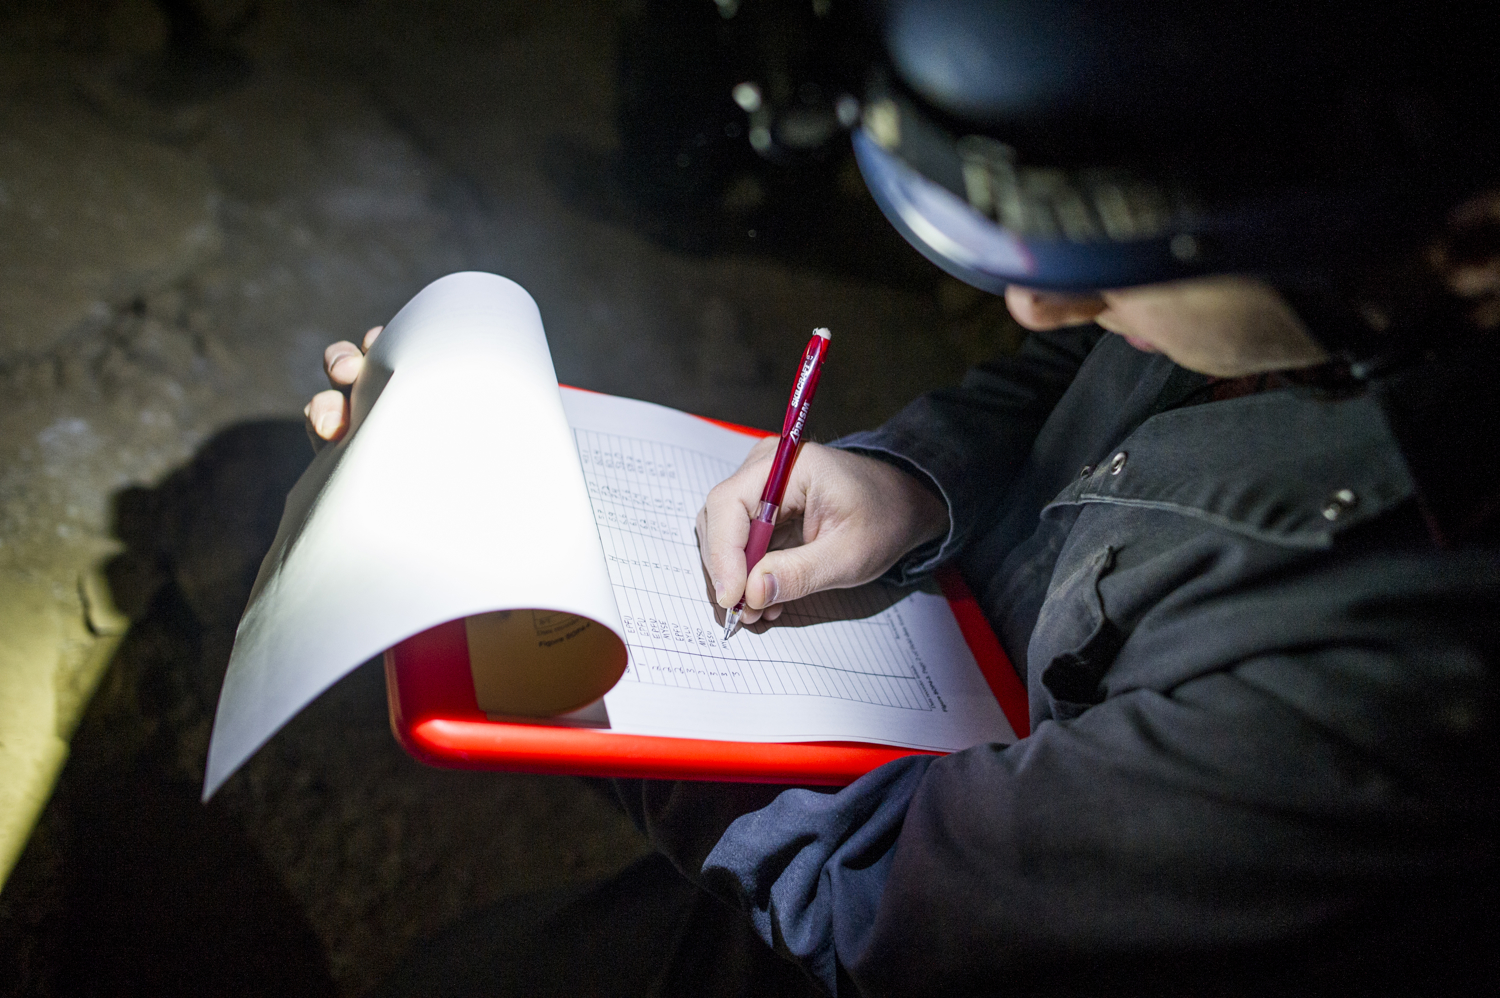 As Thomas calls out characteristics of each bat and its surroundings, a recorder writes down the data.